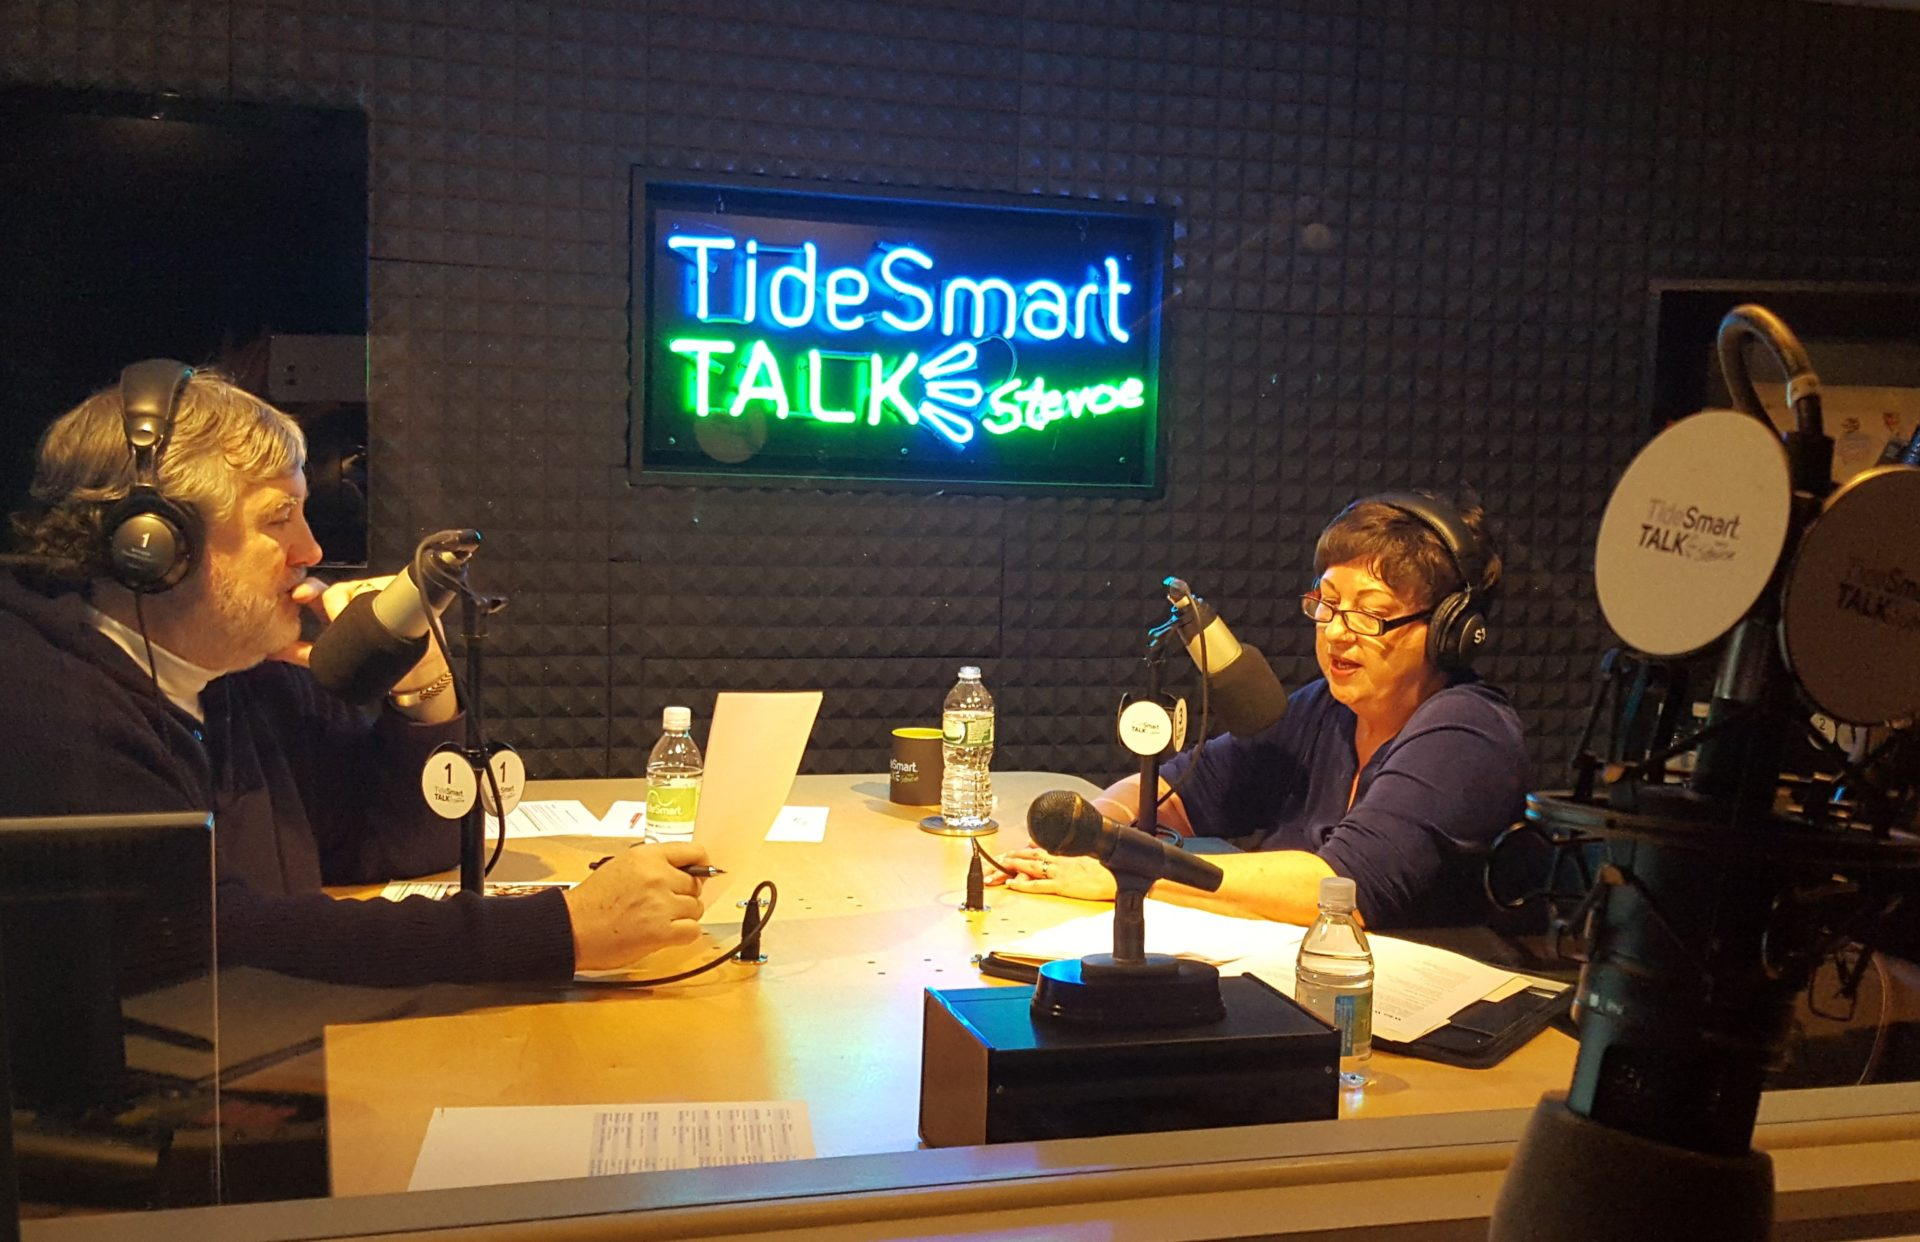 Host of TideSmart Talk with Stevoe, Steve Woods, welcomed CEO of Girl Scouts of Maine, Joanne Crepeau (at right).